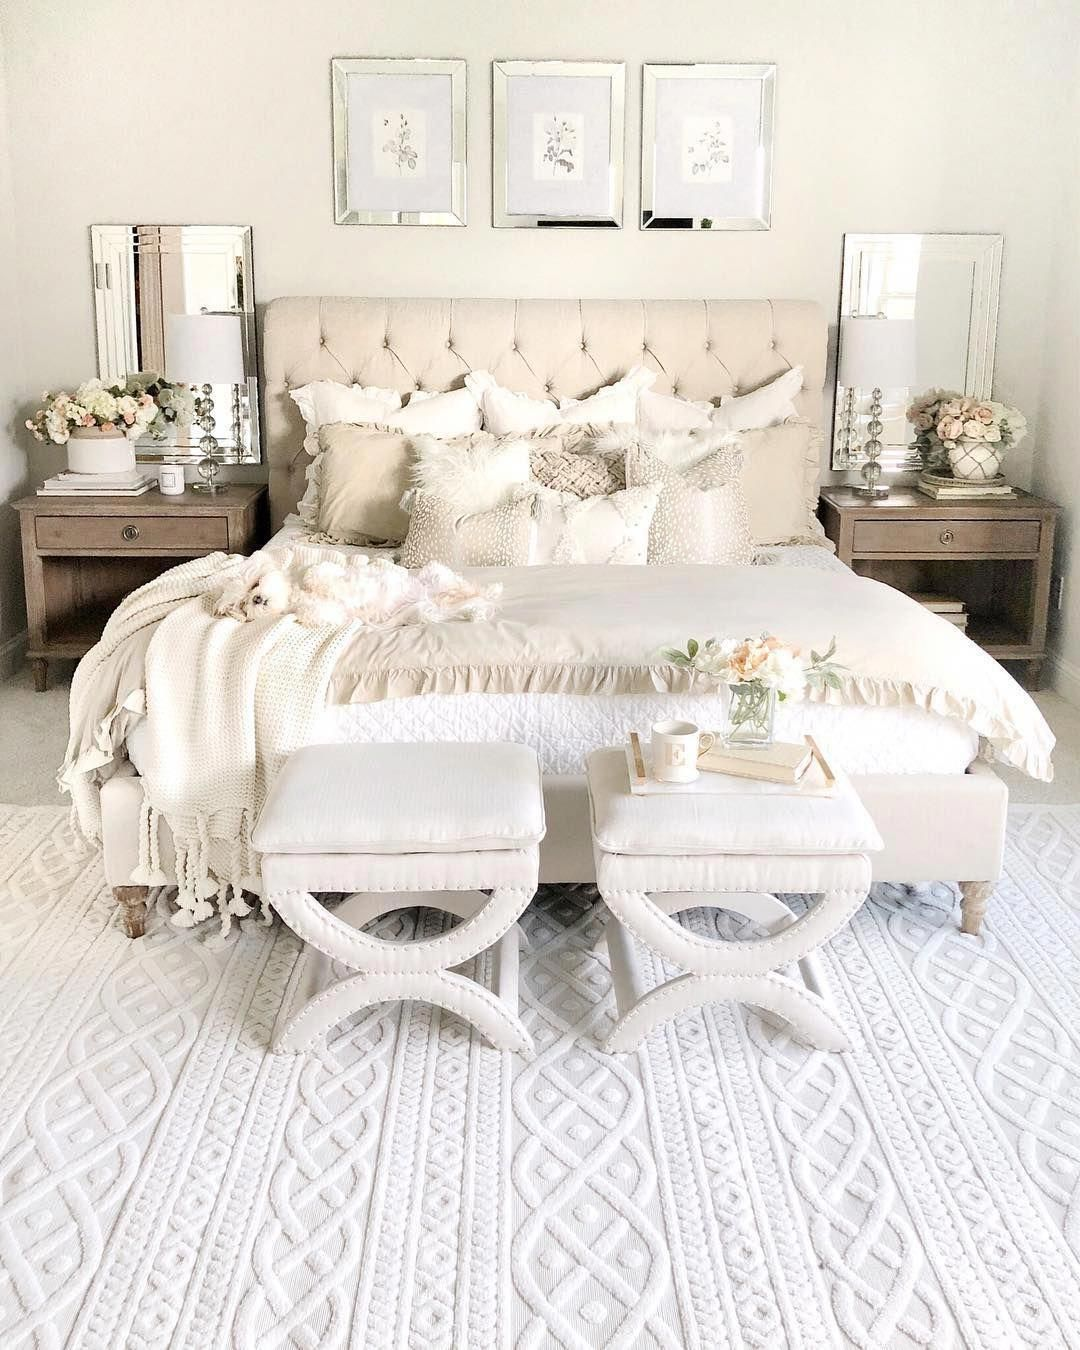 Platform Beds Remain In Fashion The Oriental Look Is One Of The Rage Design For Modern Day Furniture In 2020 Simple Bedroom Luxurious Bedrooms Master Bedroom Design